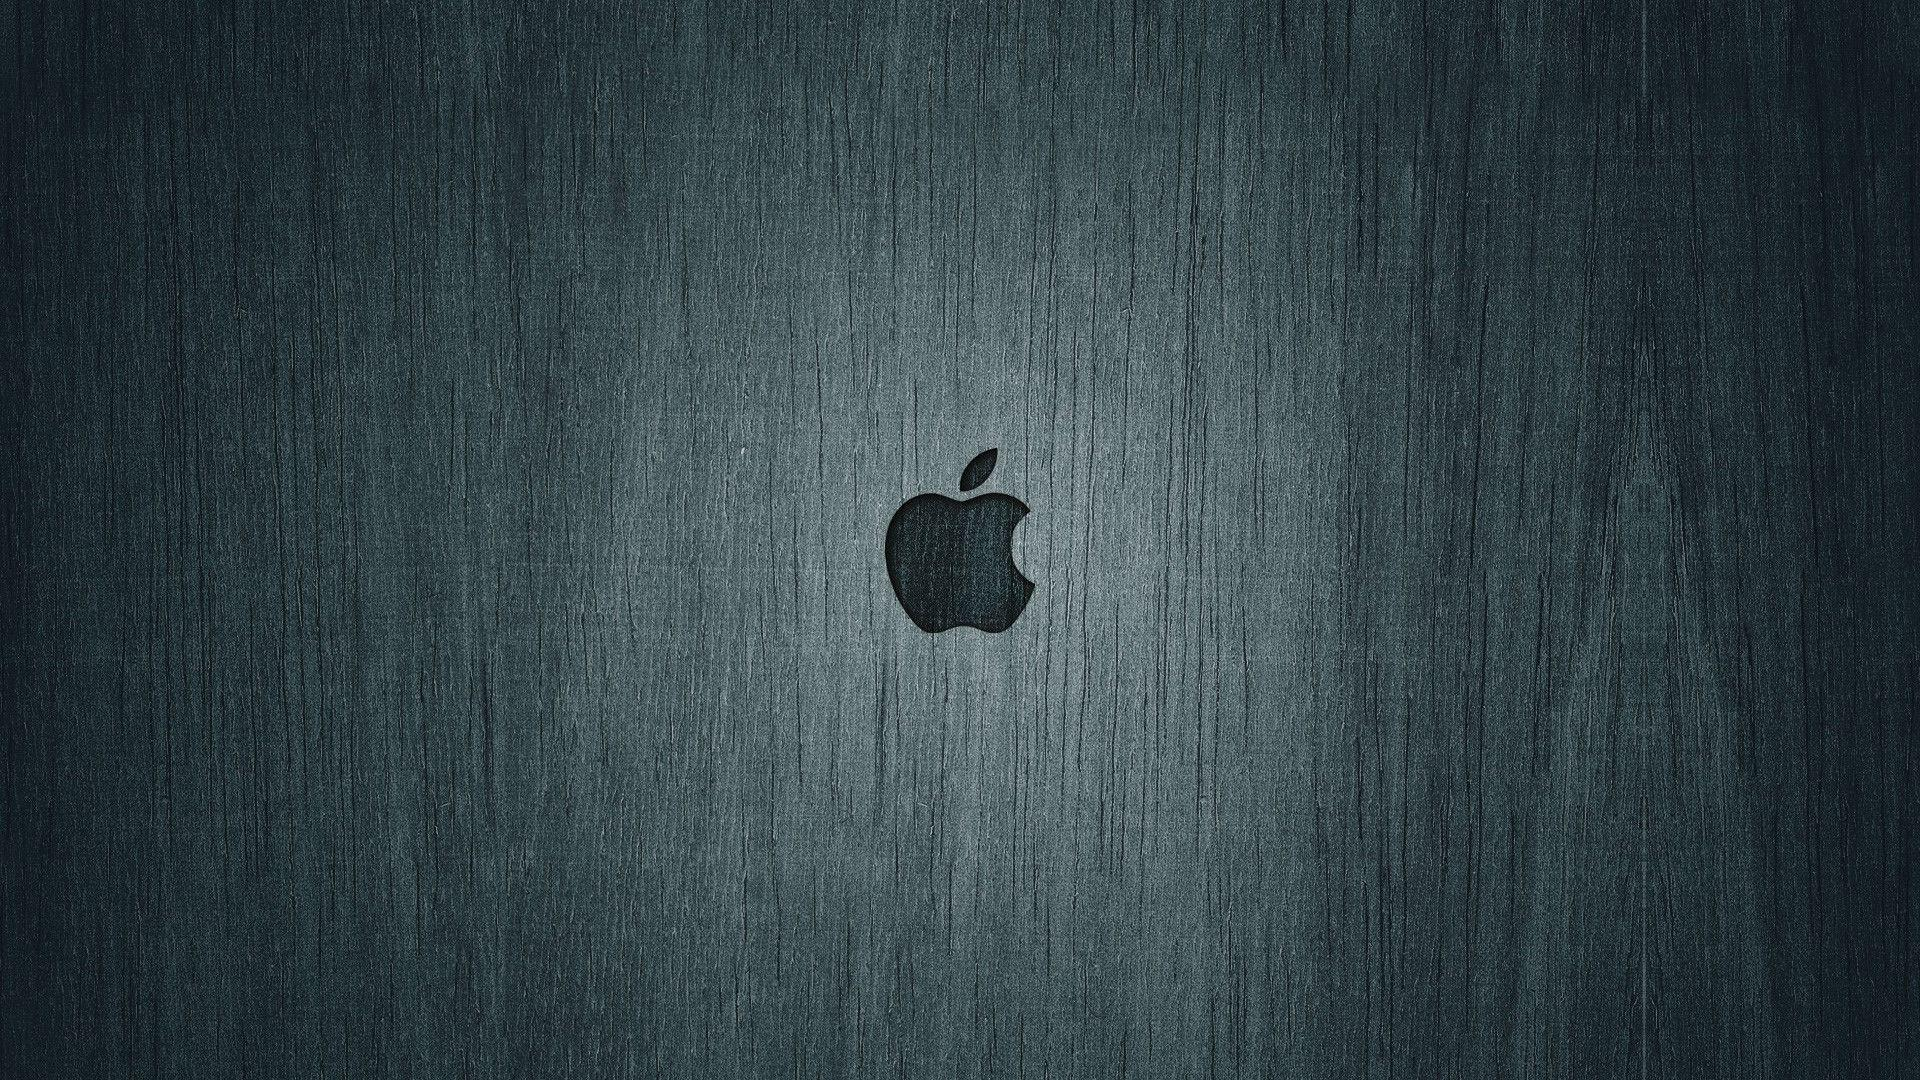 Hd Apple Wallpapers 1080p Wallpaper Cave